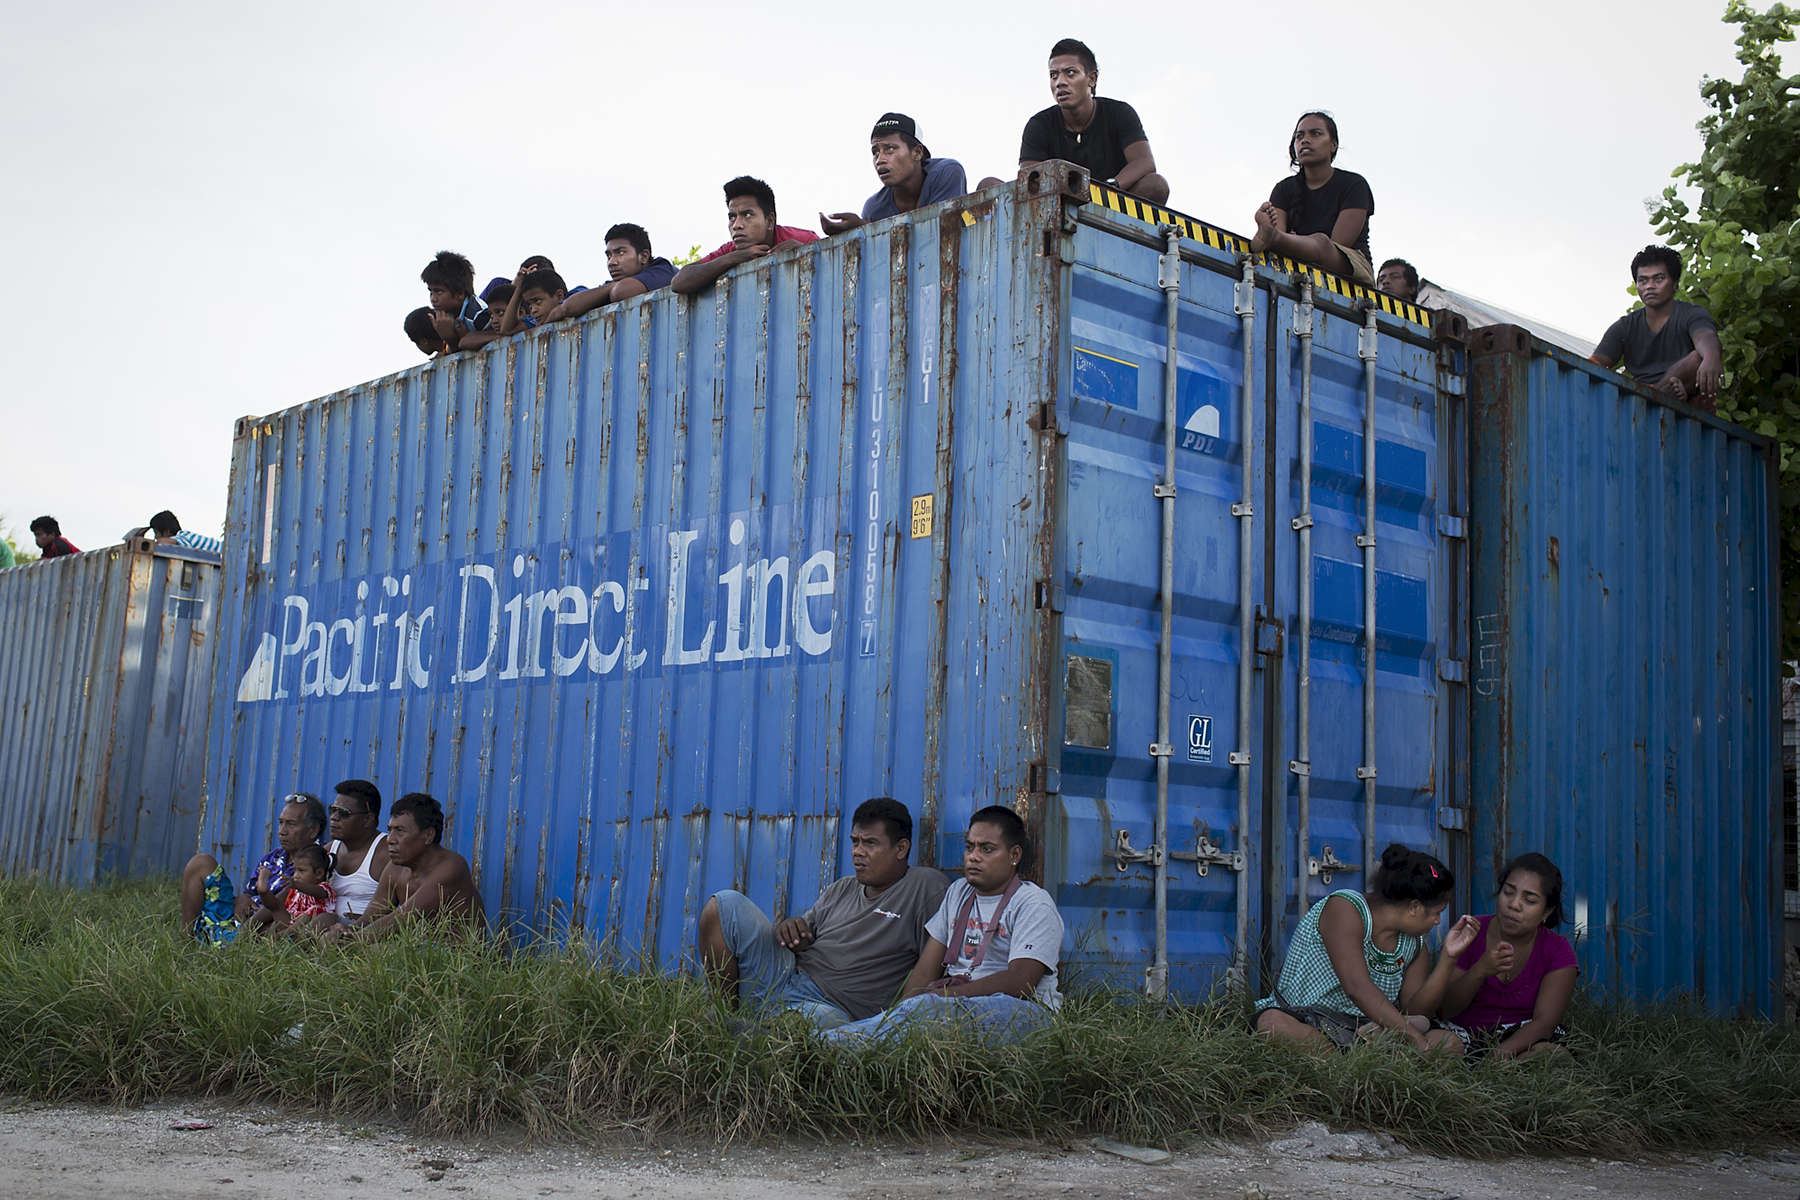 Onlookers watch a soccer game from atop of a shipping container  at the sports complex in Bairiki village, South Tarawa island, Kiribati.